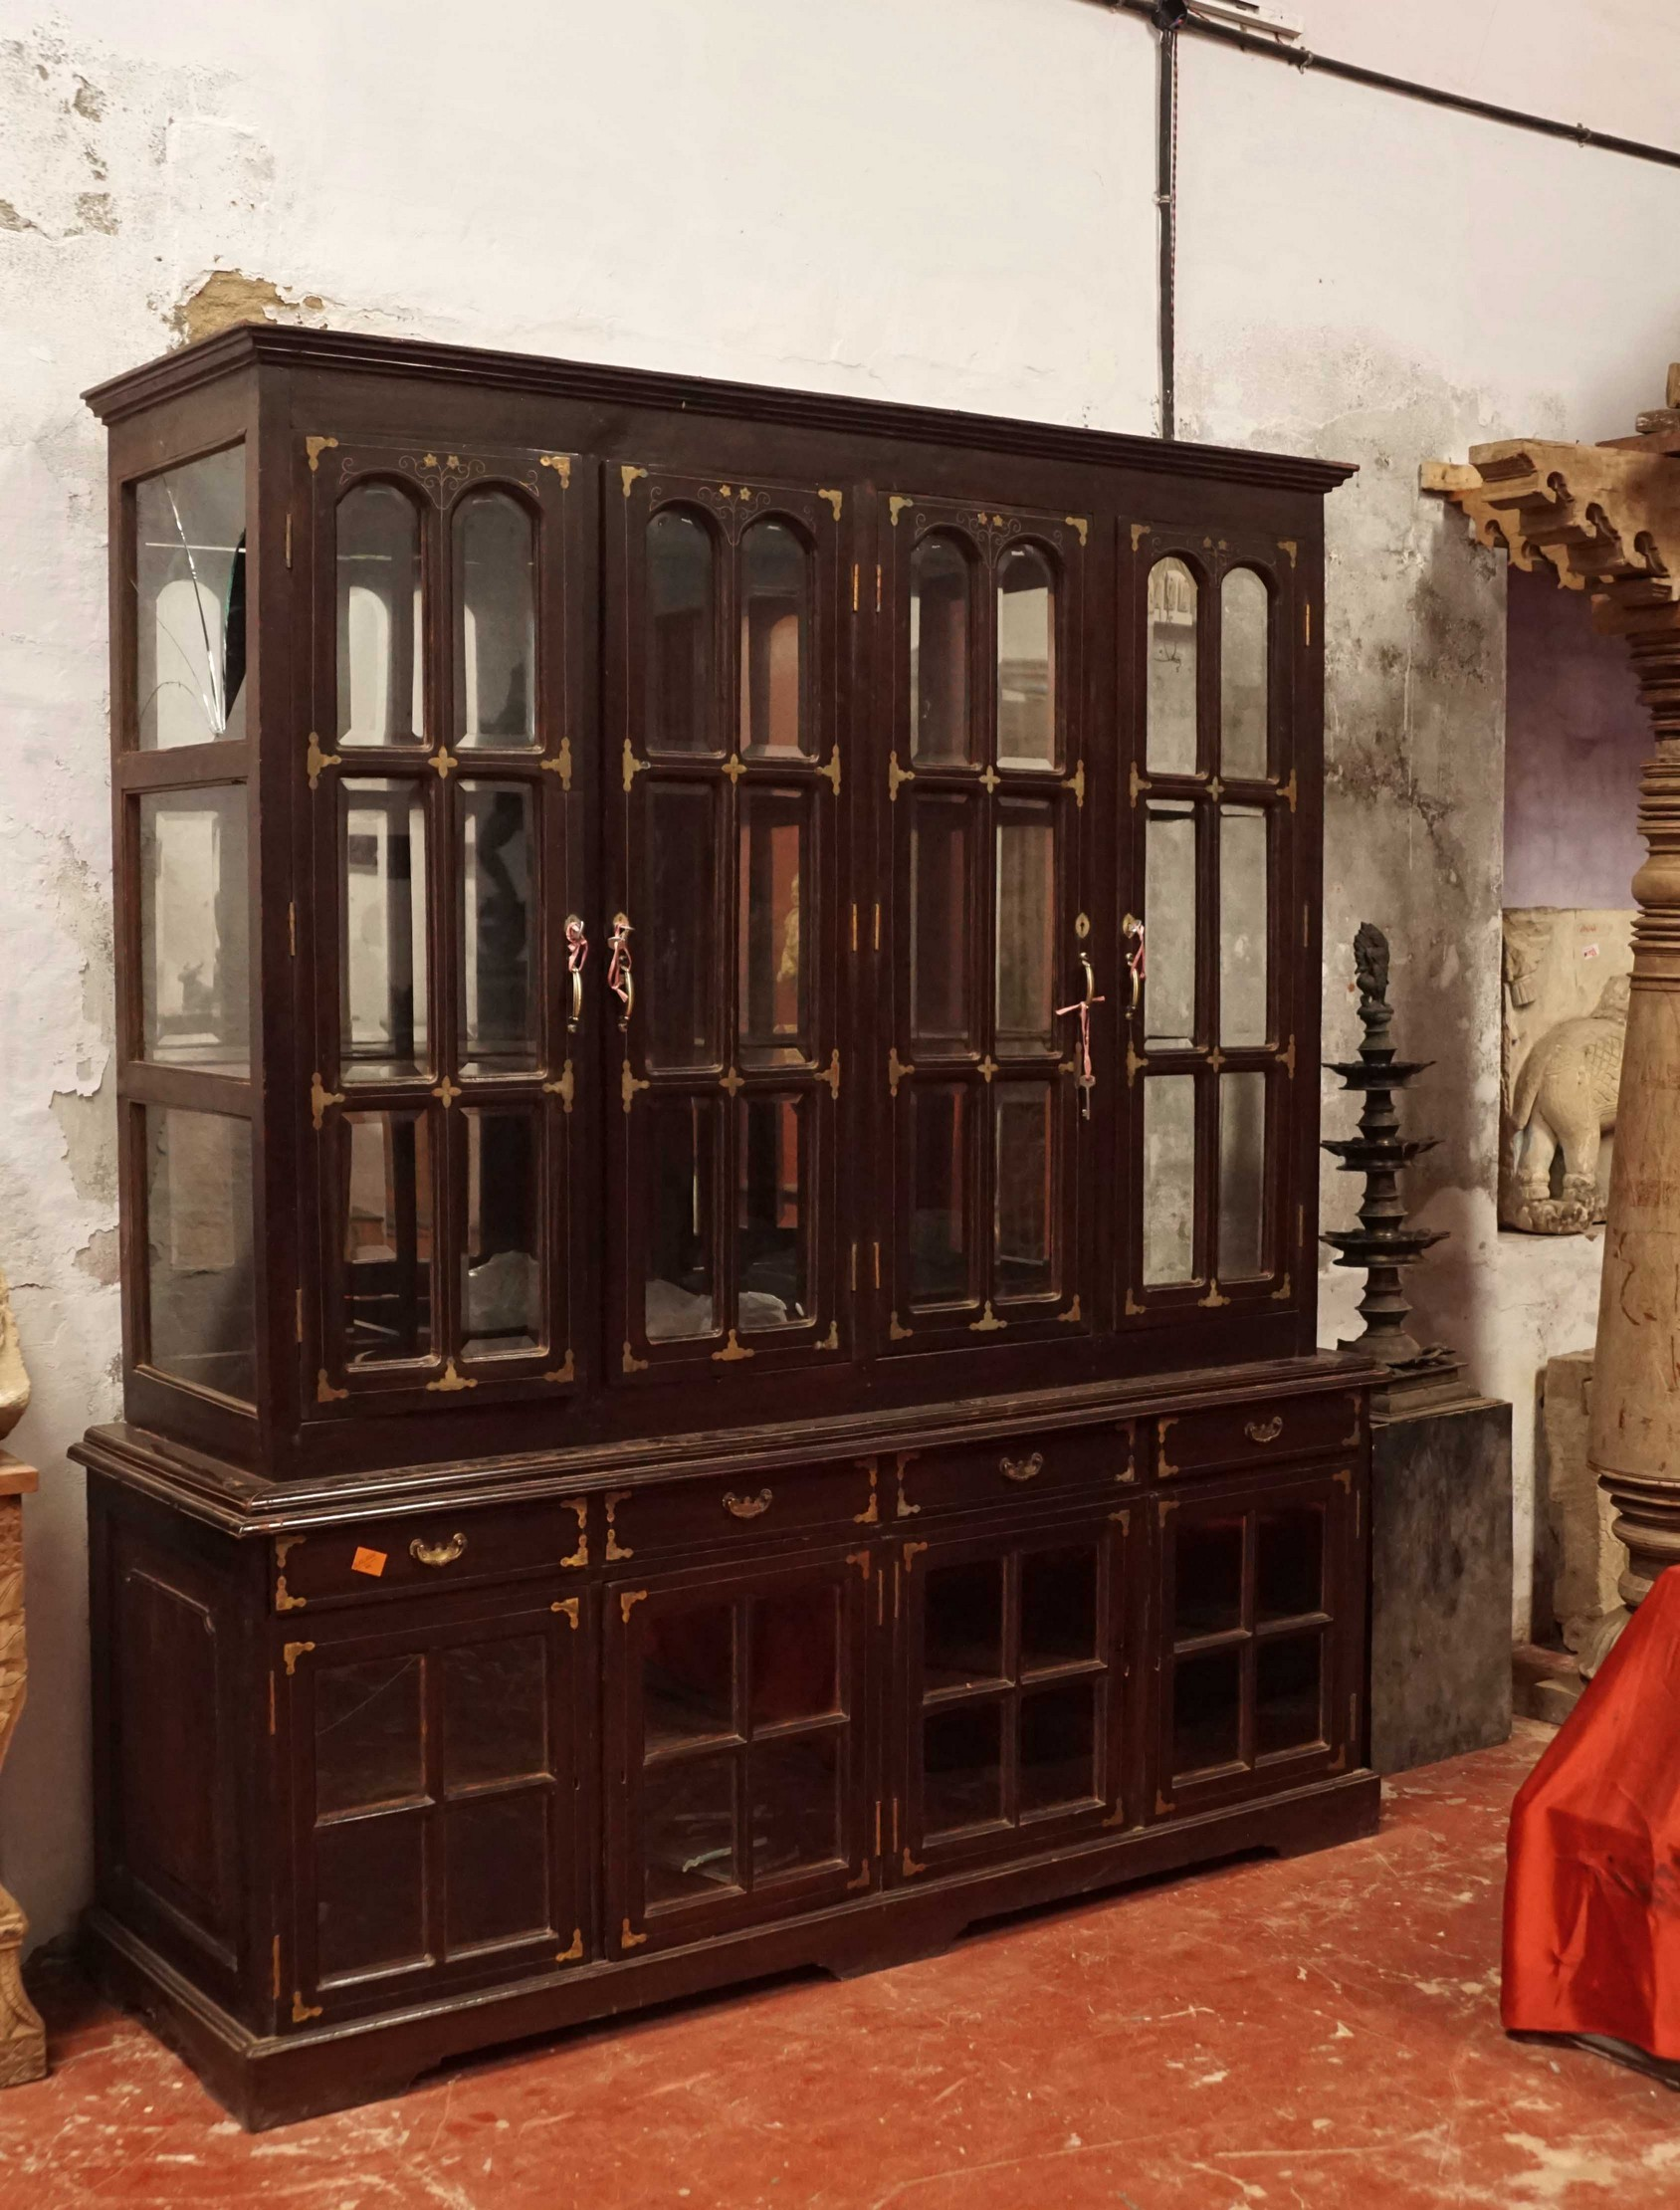 online vintage furniture stores antique furniture vintage furniture shop india 3712